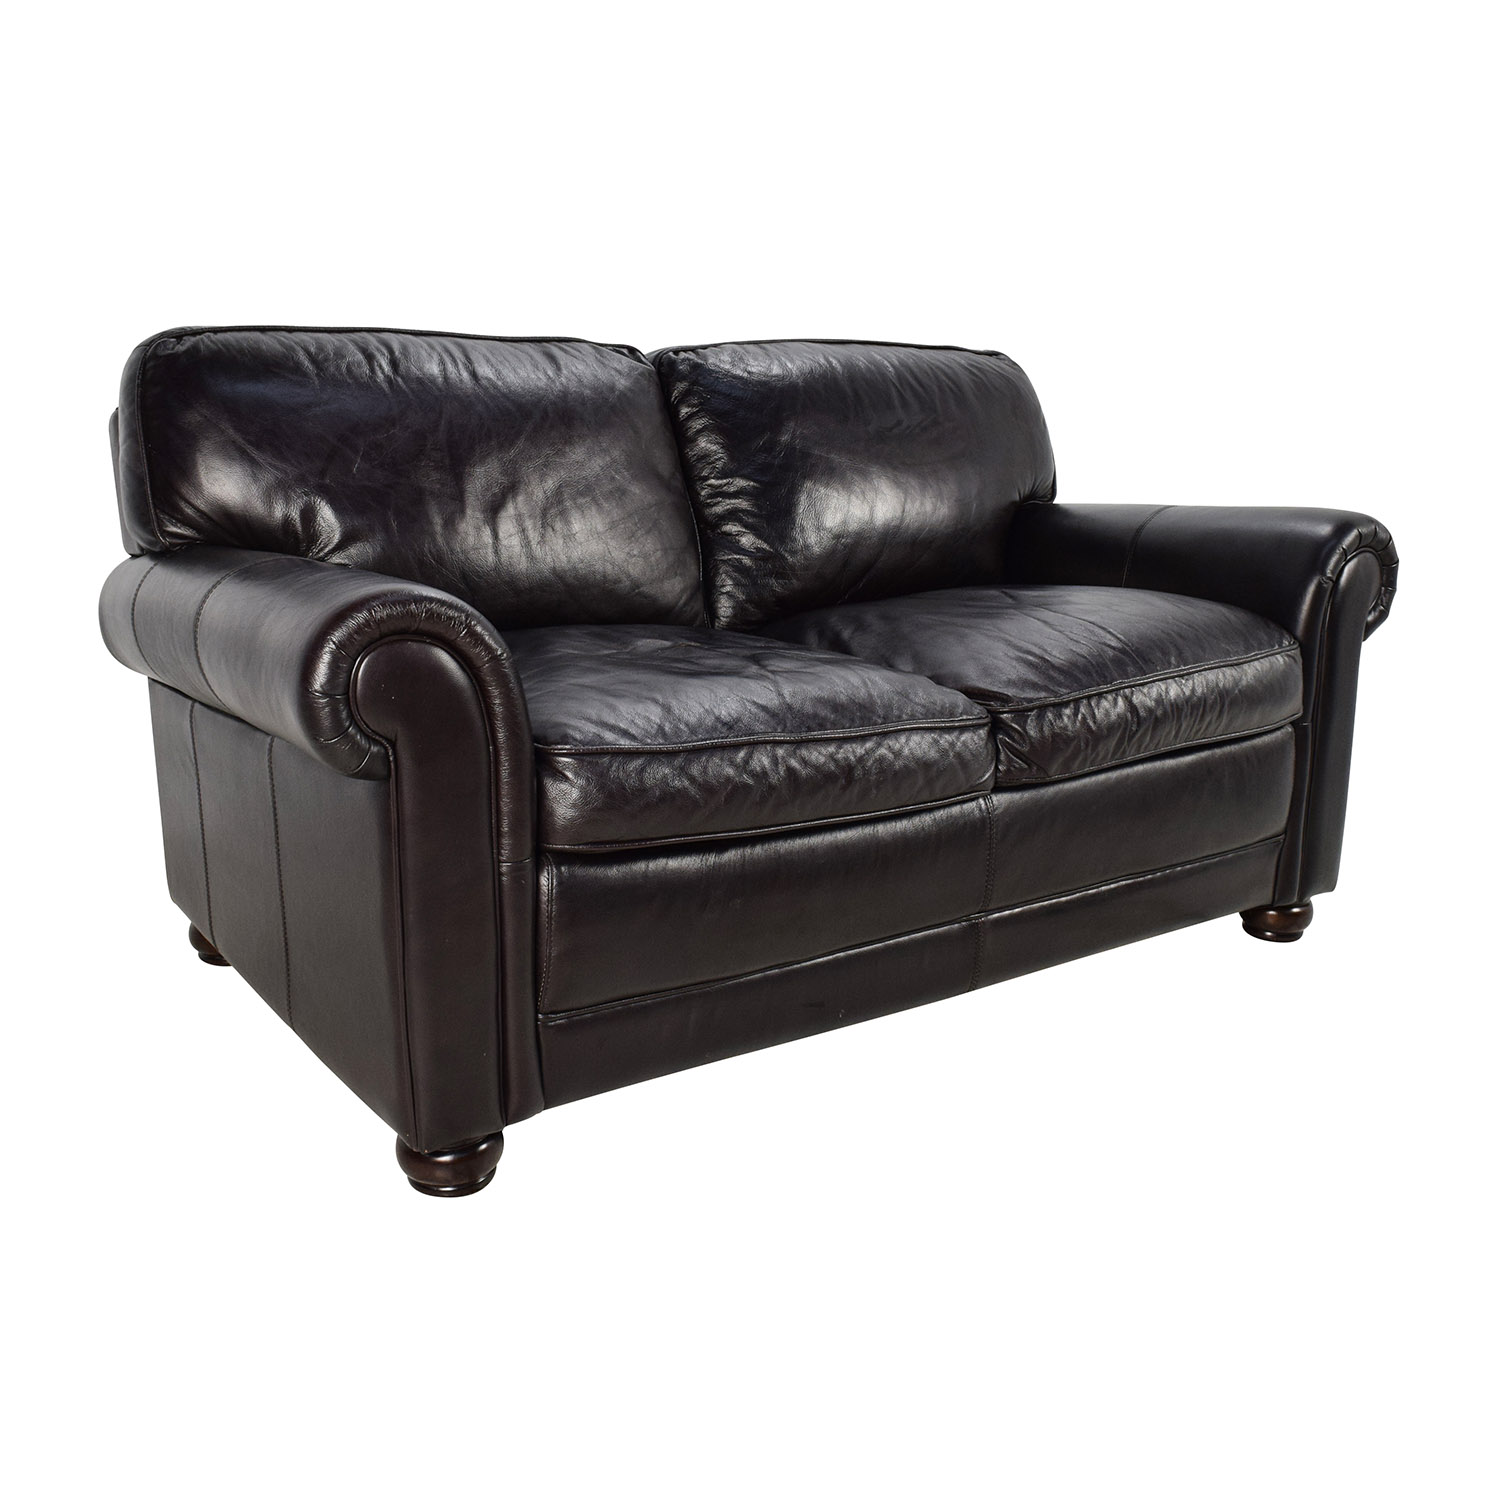 82% OFF Bob s Furniture Bob s Furniture Leather Dark Brown Sofa